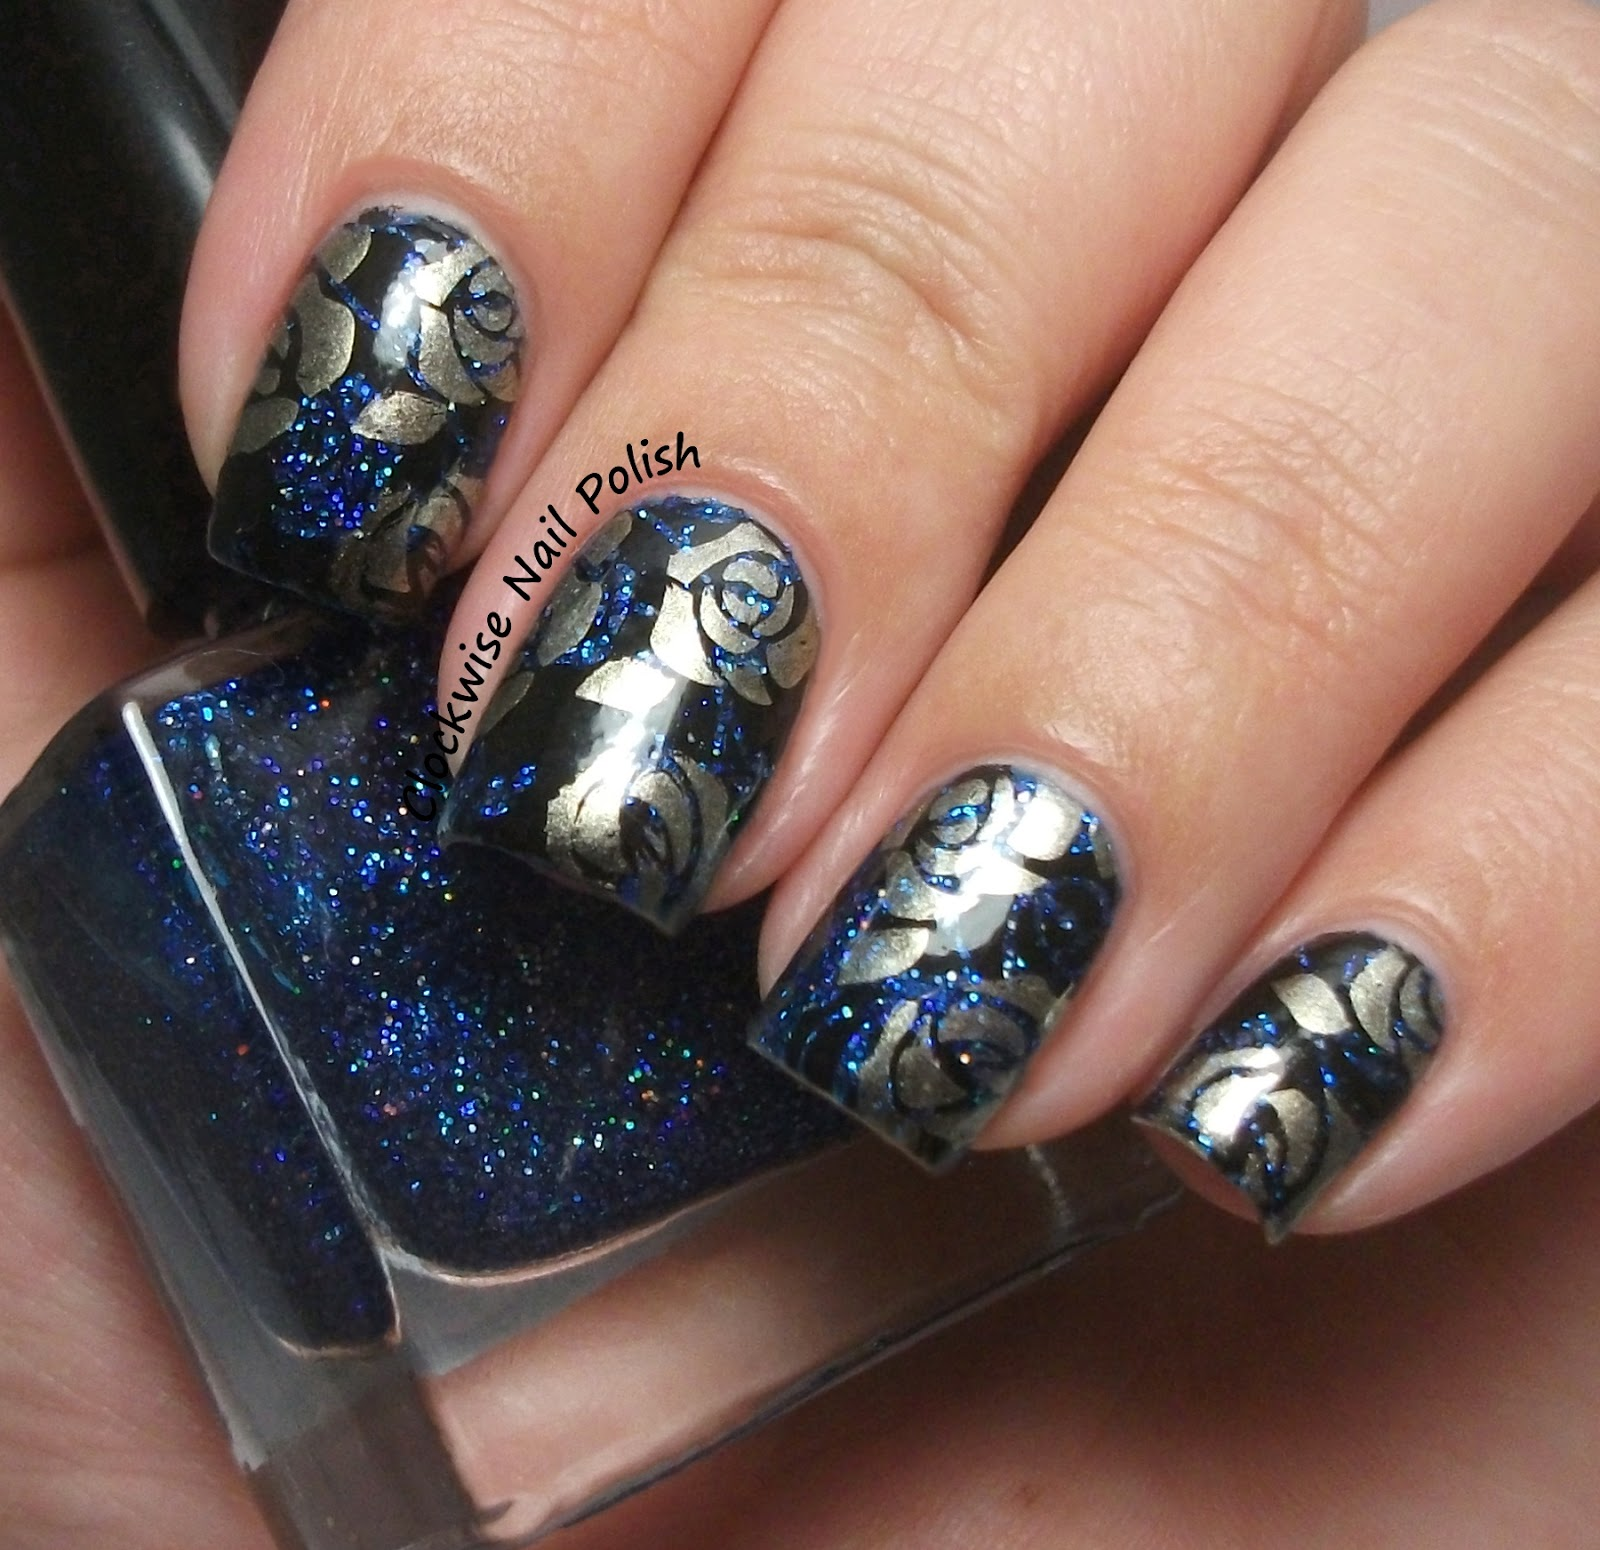 The Clockwise Nail Polish: Birthday Nails & Esmalteria da KK #Surtei